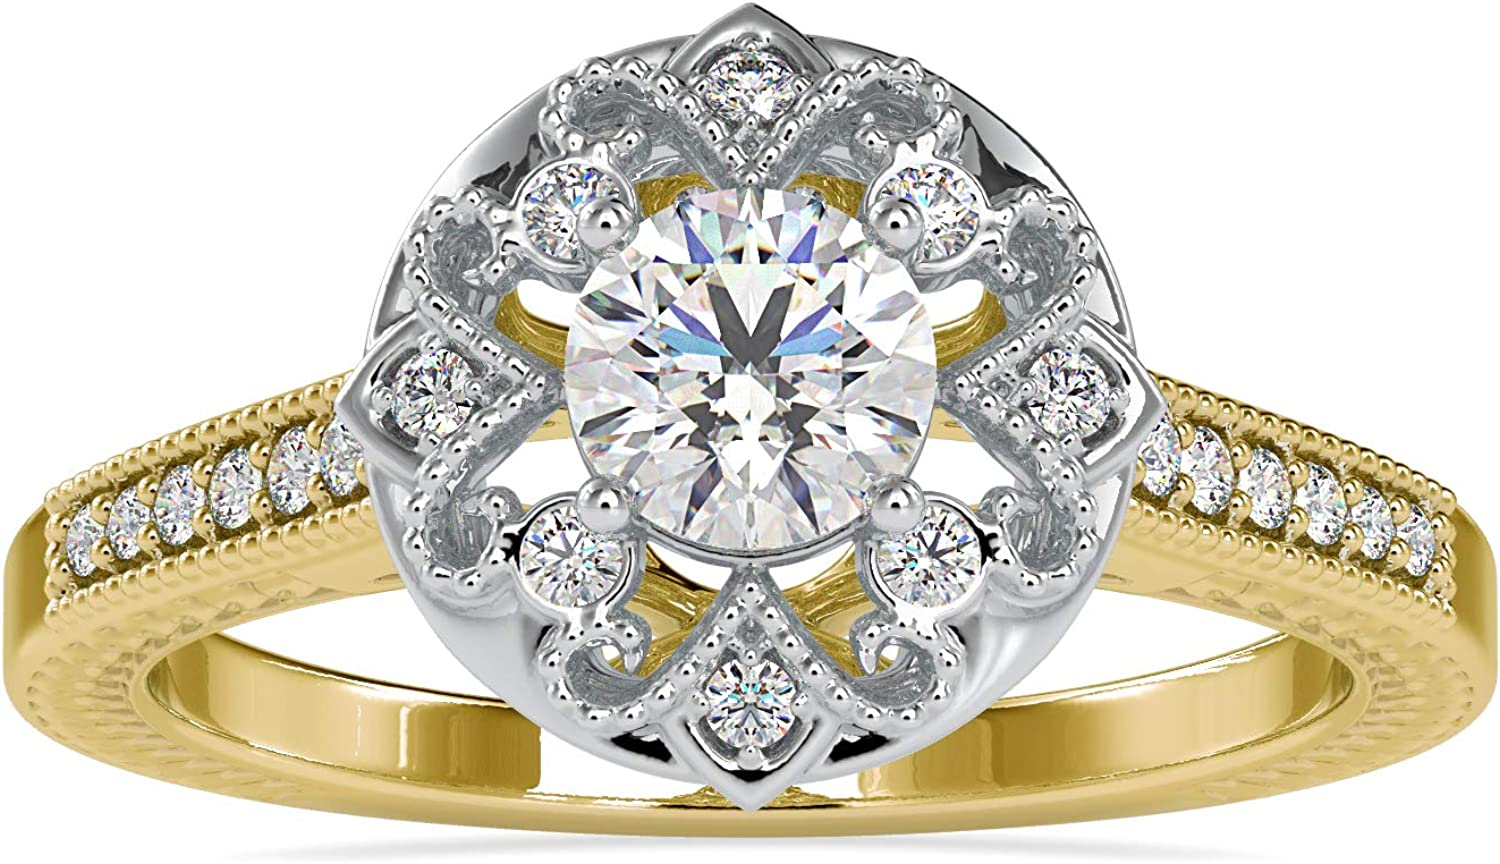 Certified Petite Twisted Vine Halo Time sale with 0.37 security Engagement Ct Ring